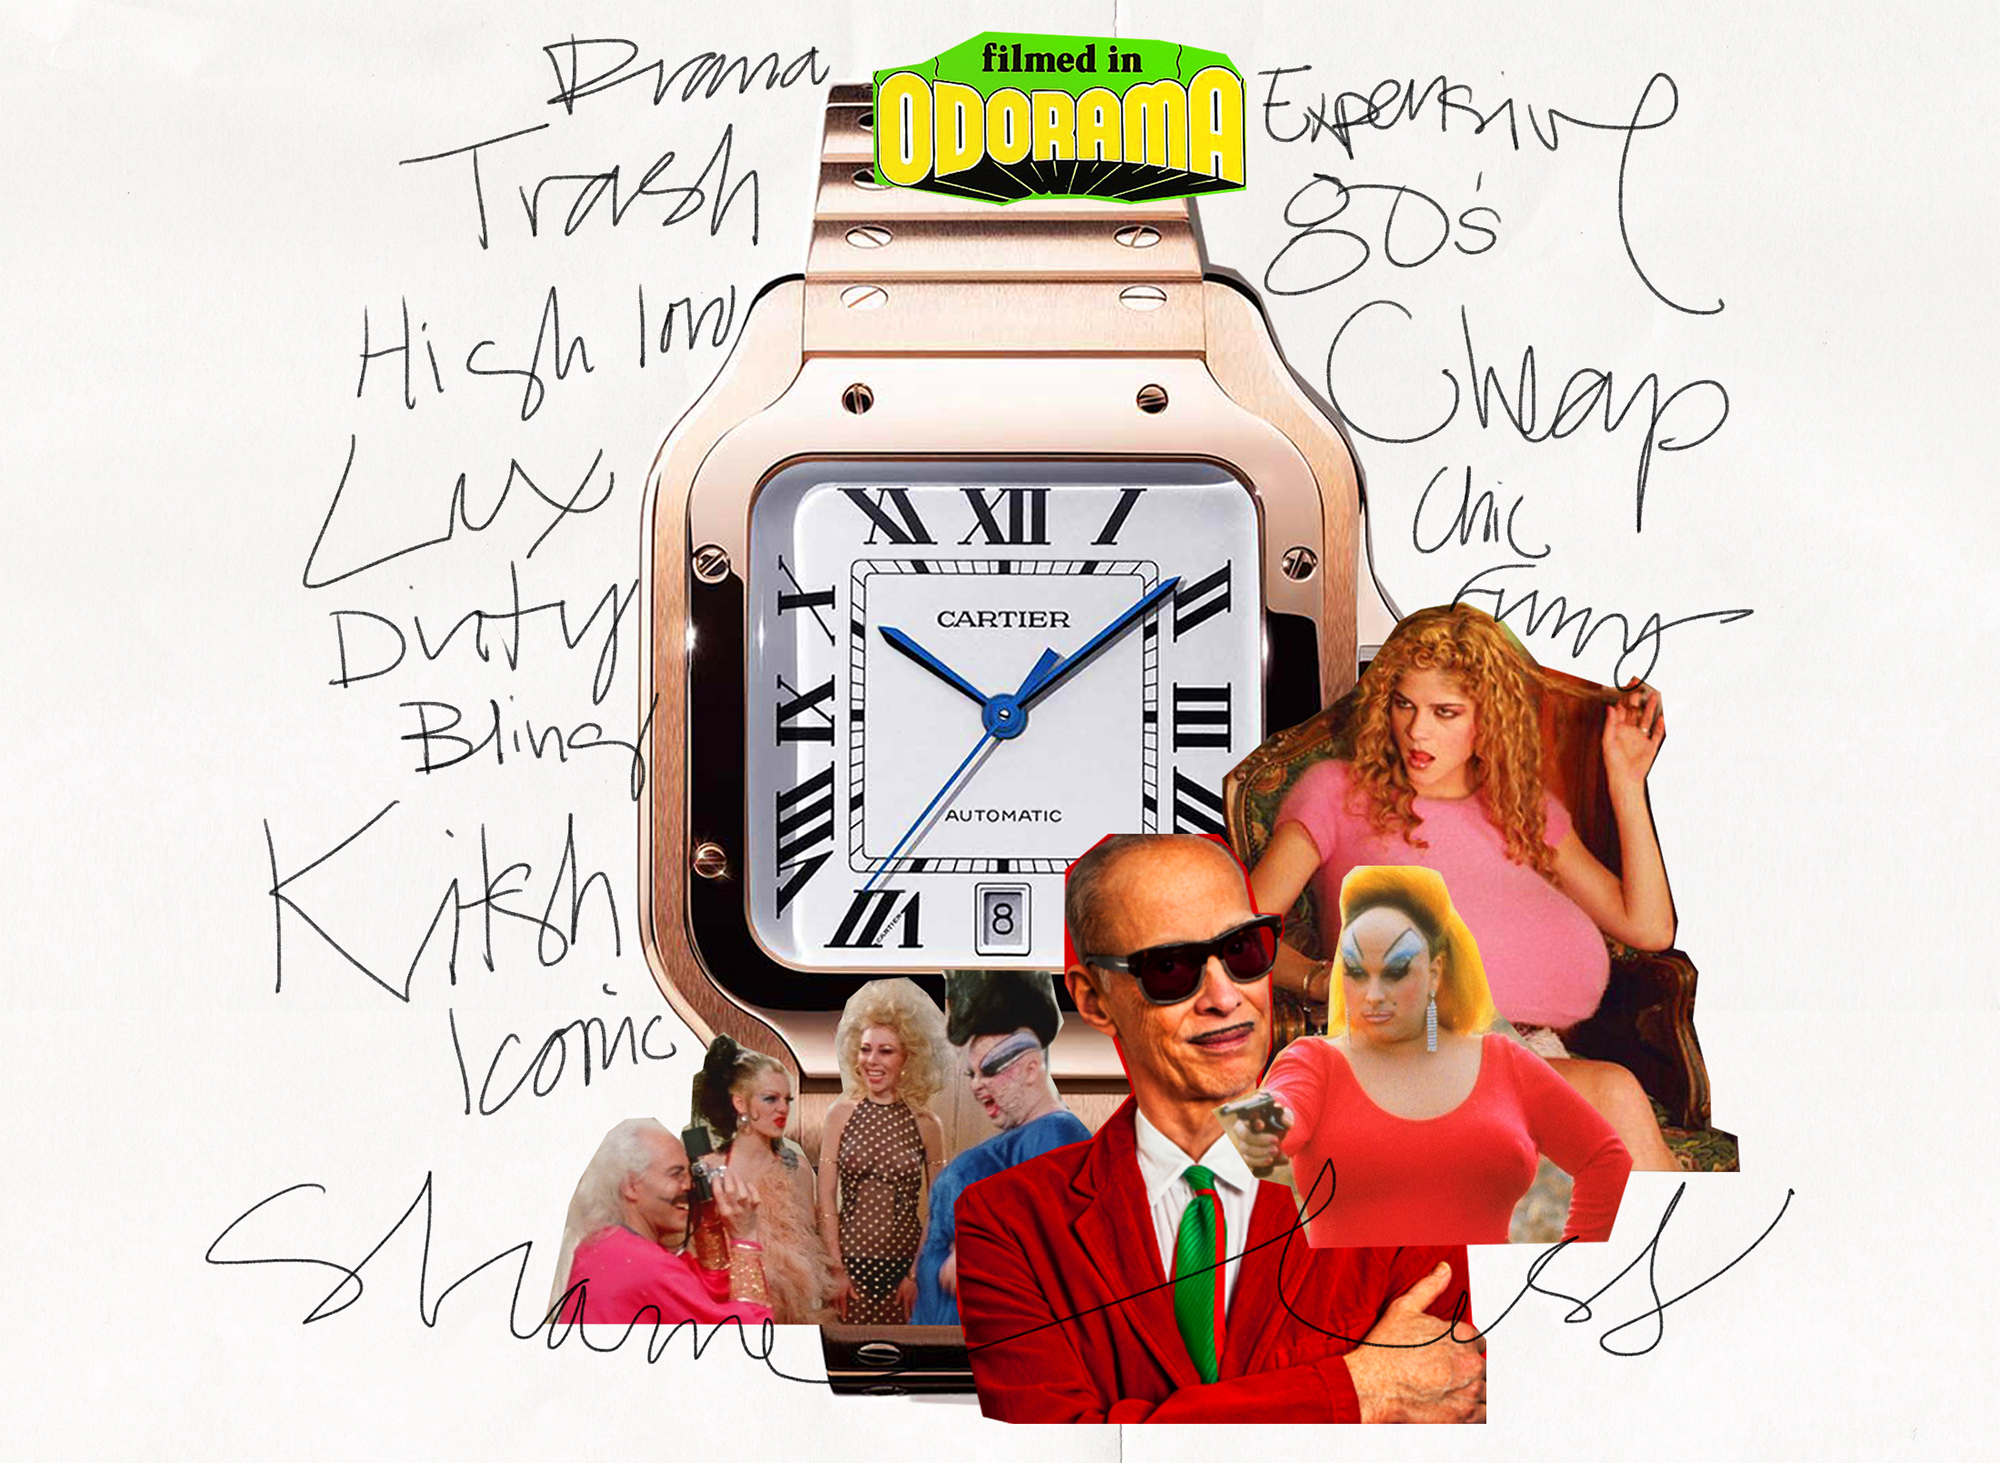 The concept for  Shameless:  John Waters' trash aesthetic meets high end jewelry